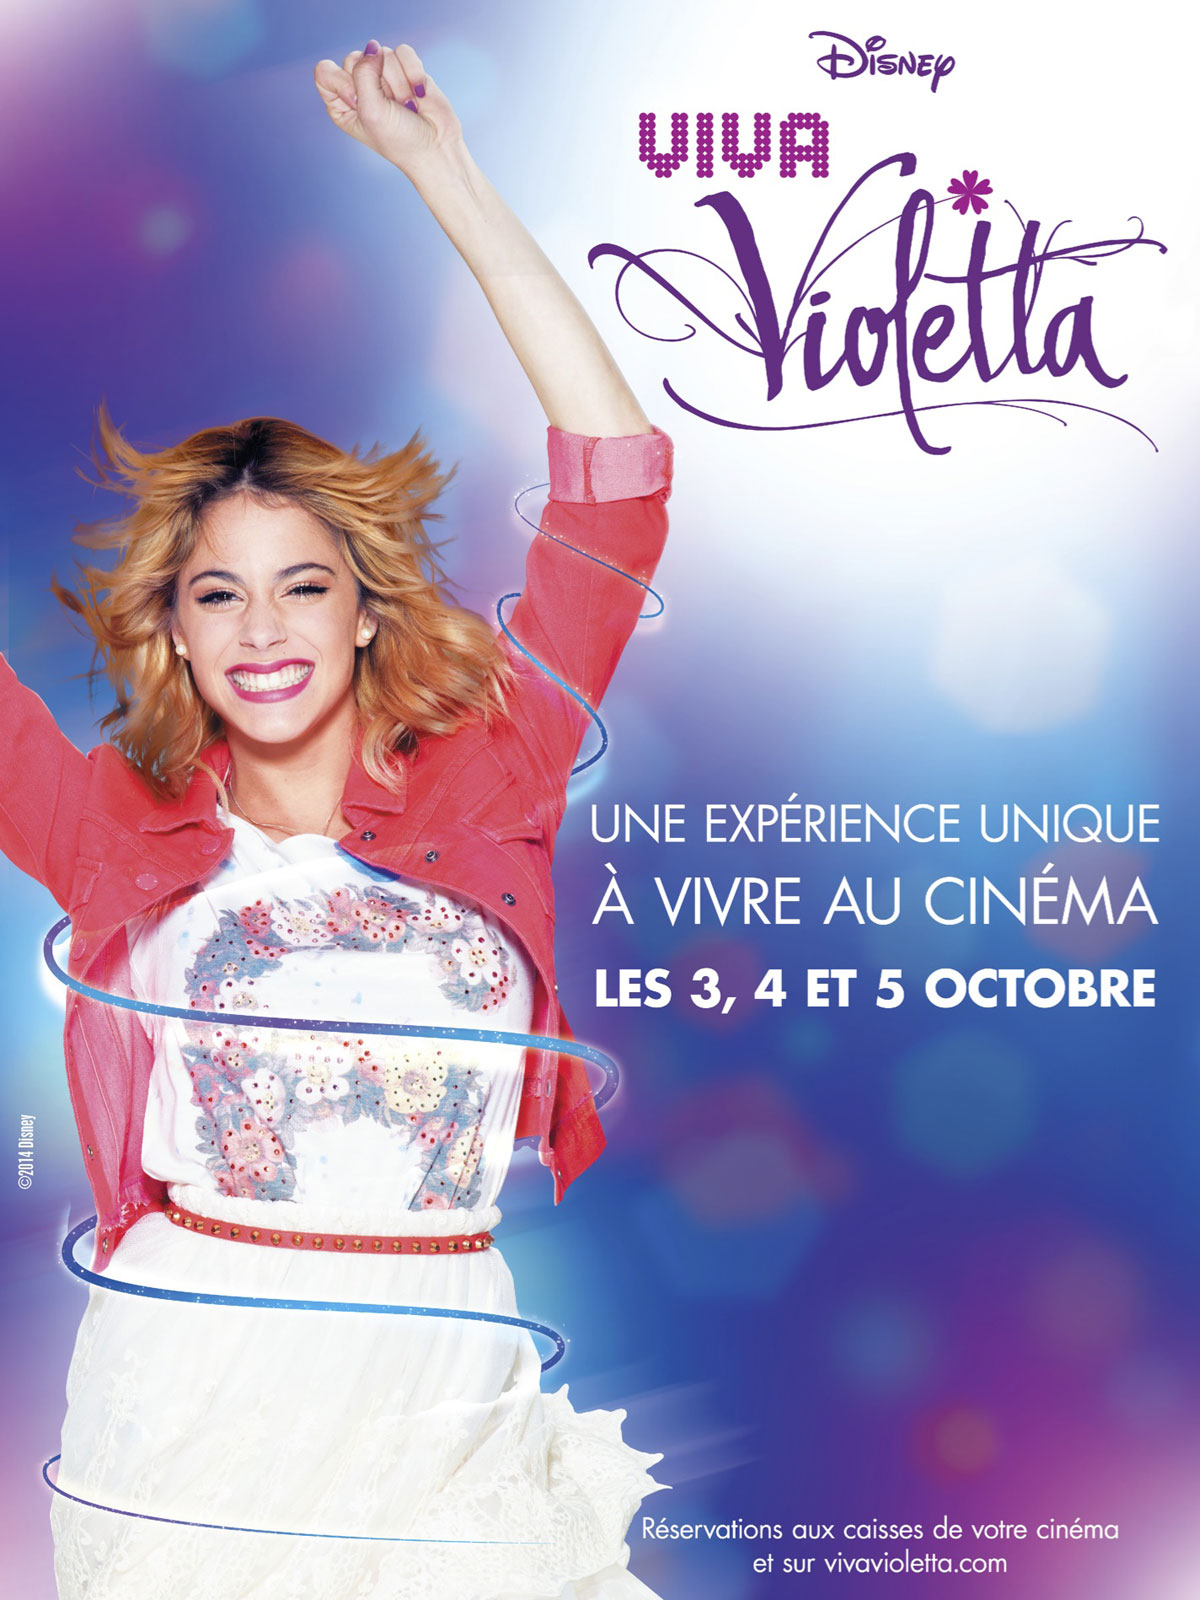 Télécharger Viva violetta  (Côté Diffusion) TUREFRENCH DVDRIP Uploaded